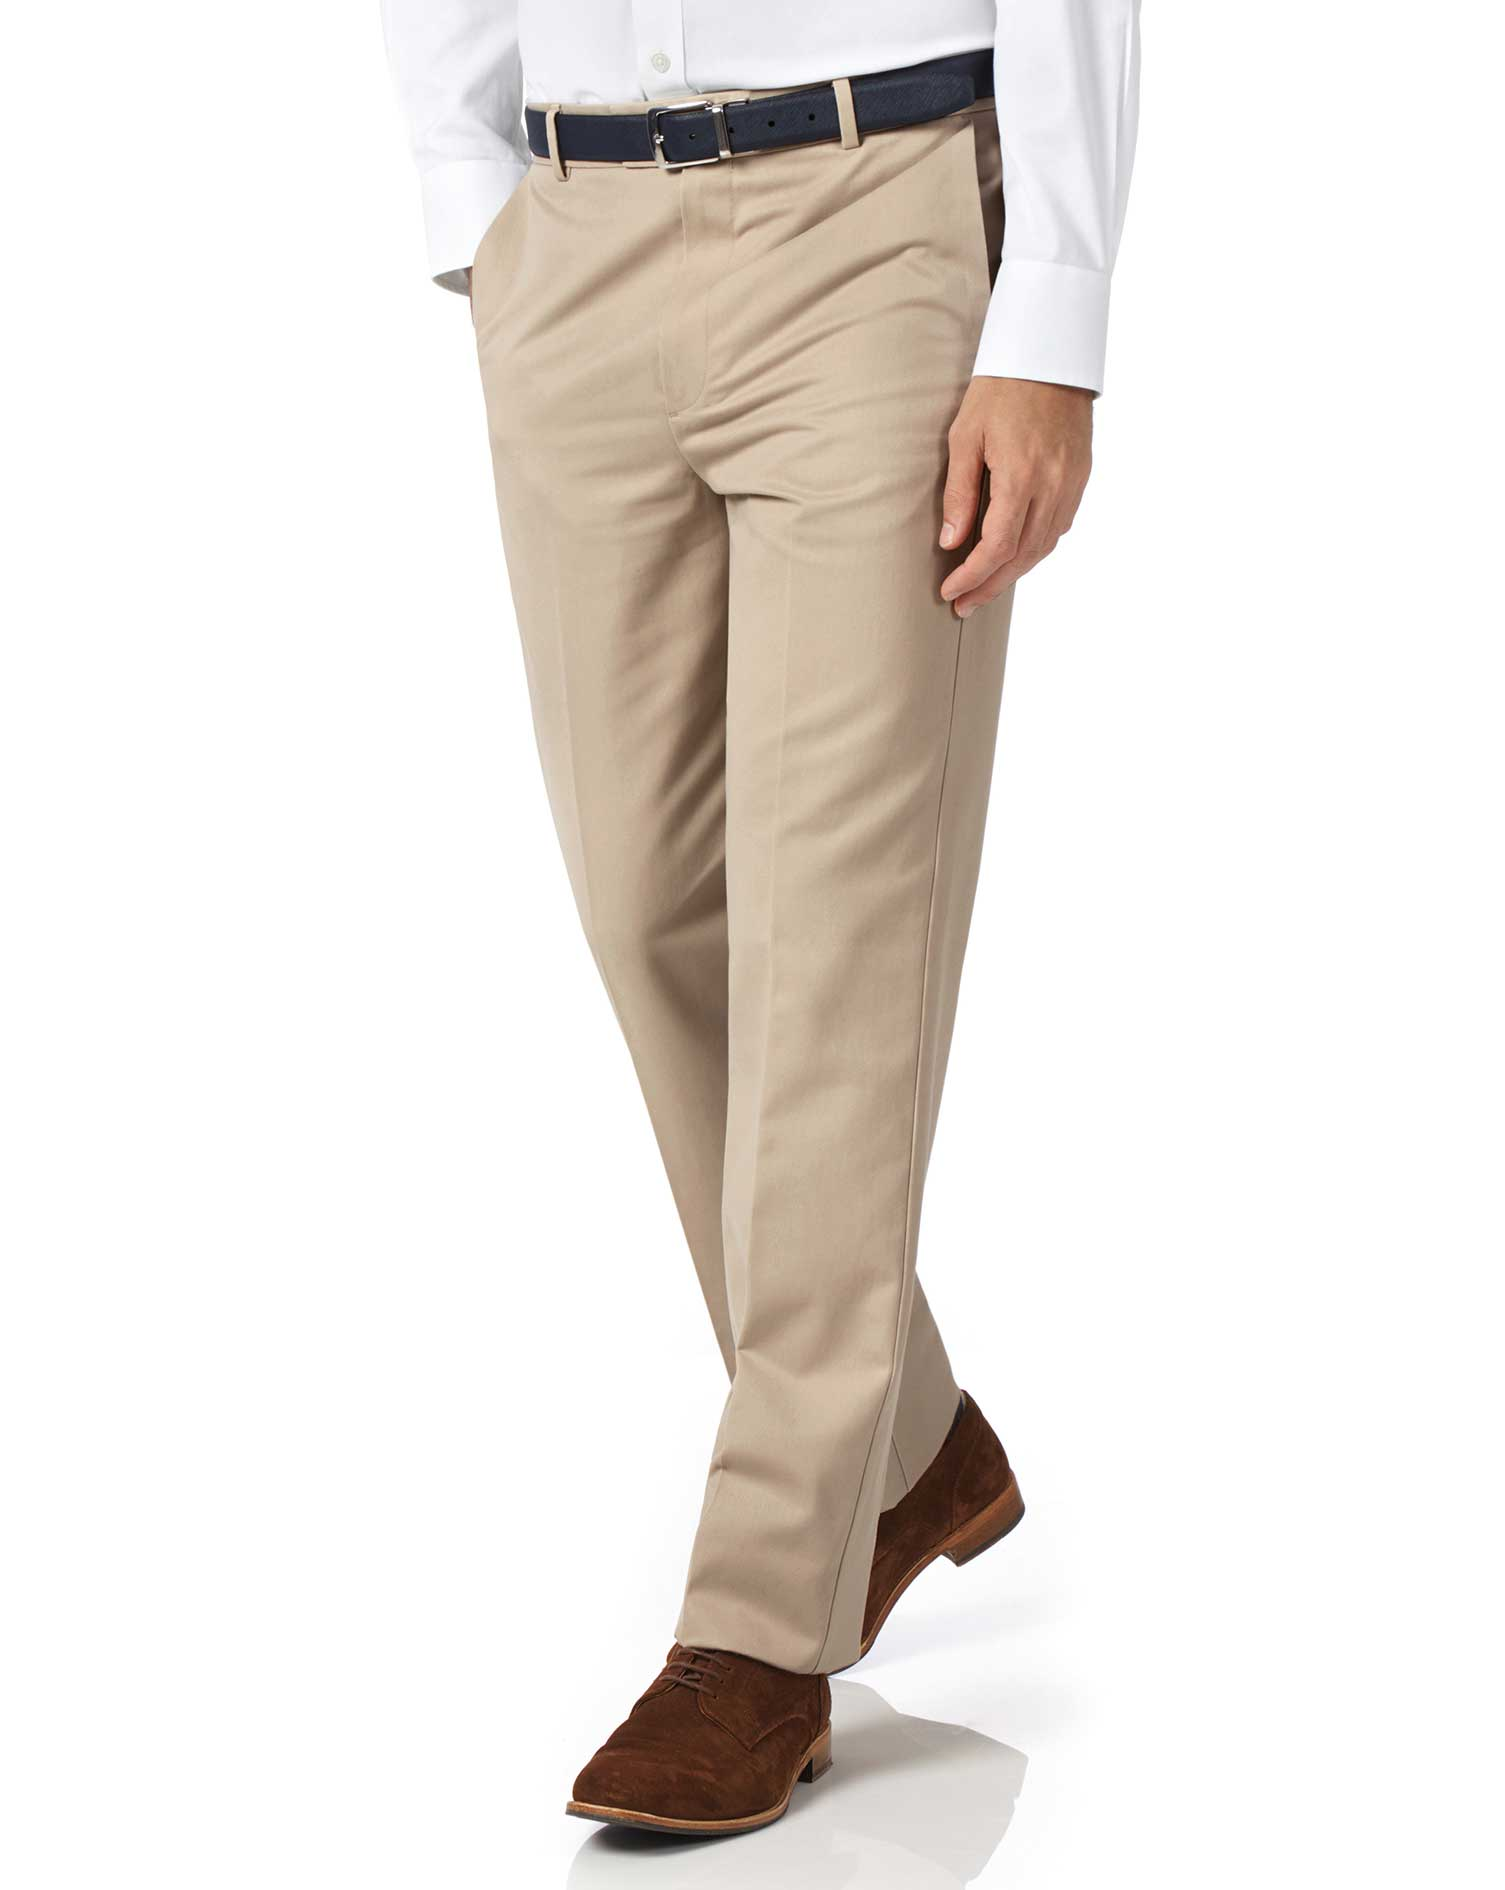 Stone Classic Fit Flat Front Non-Iron Cotton Chino Trousers Size W34 L38 by Charles Tyrwhitt